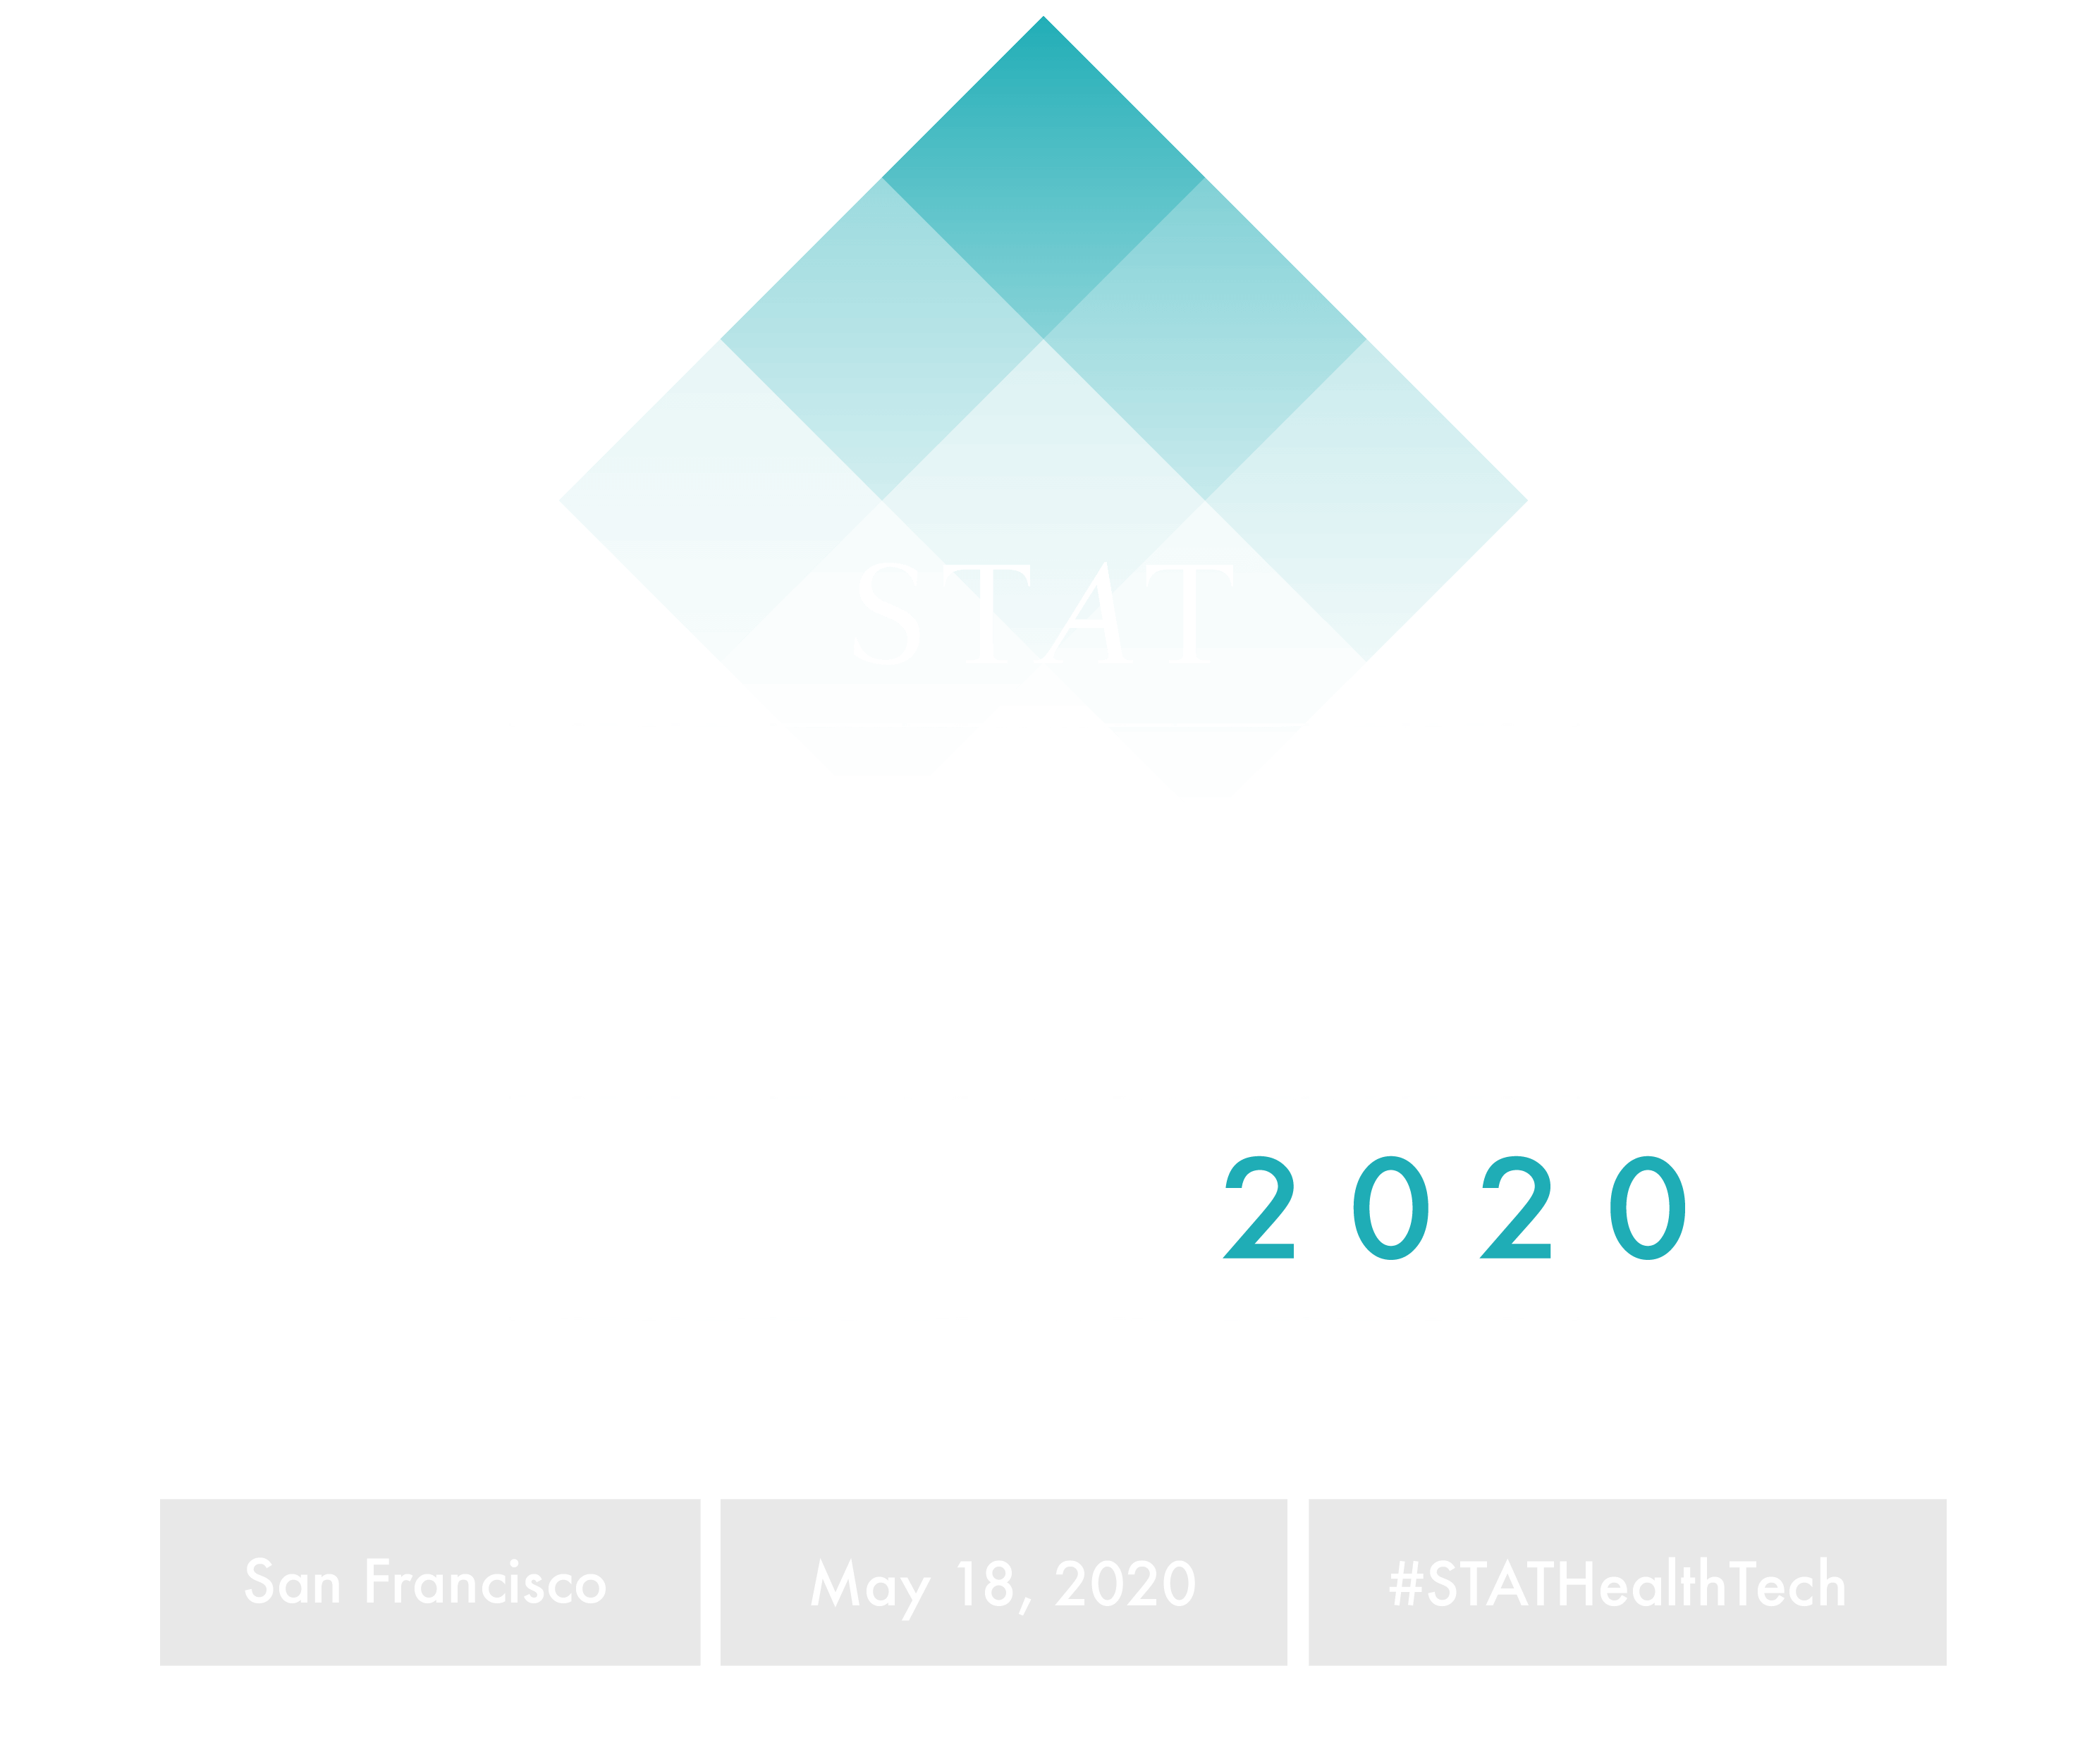 STAT Health Tech Summit 2020